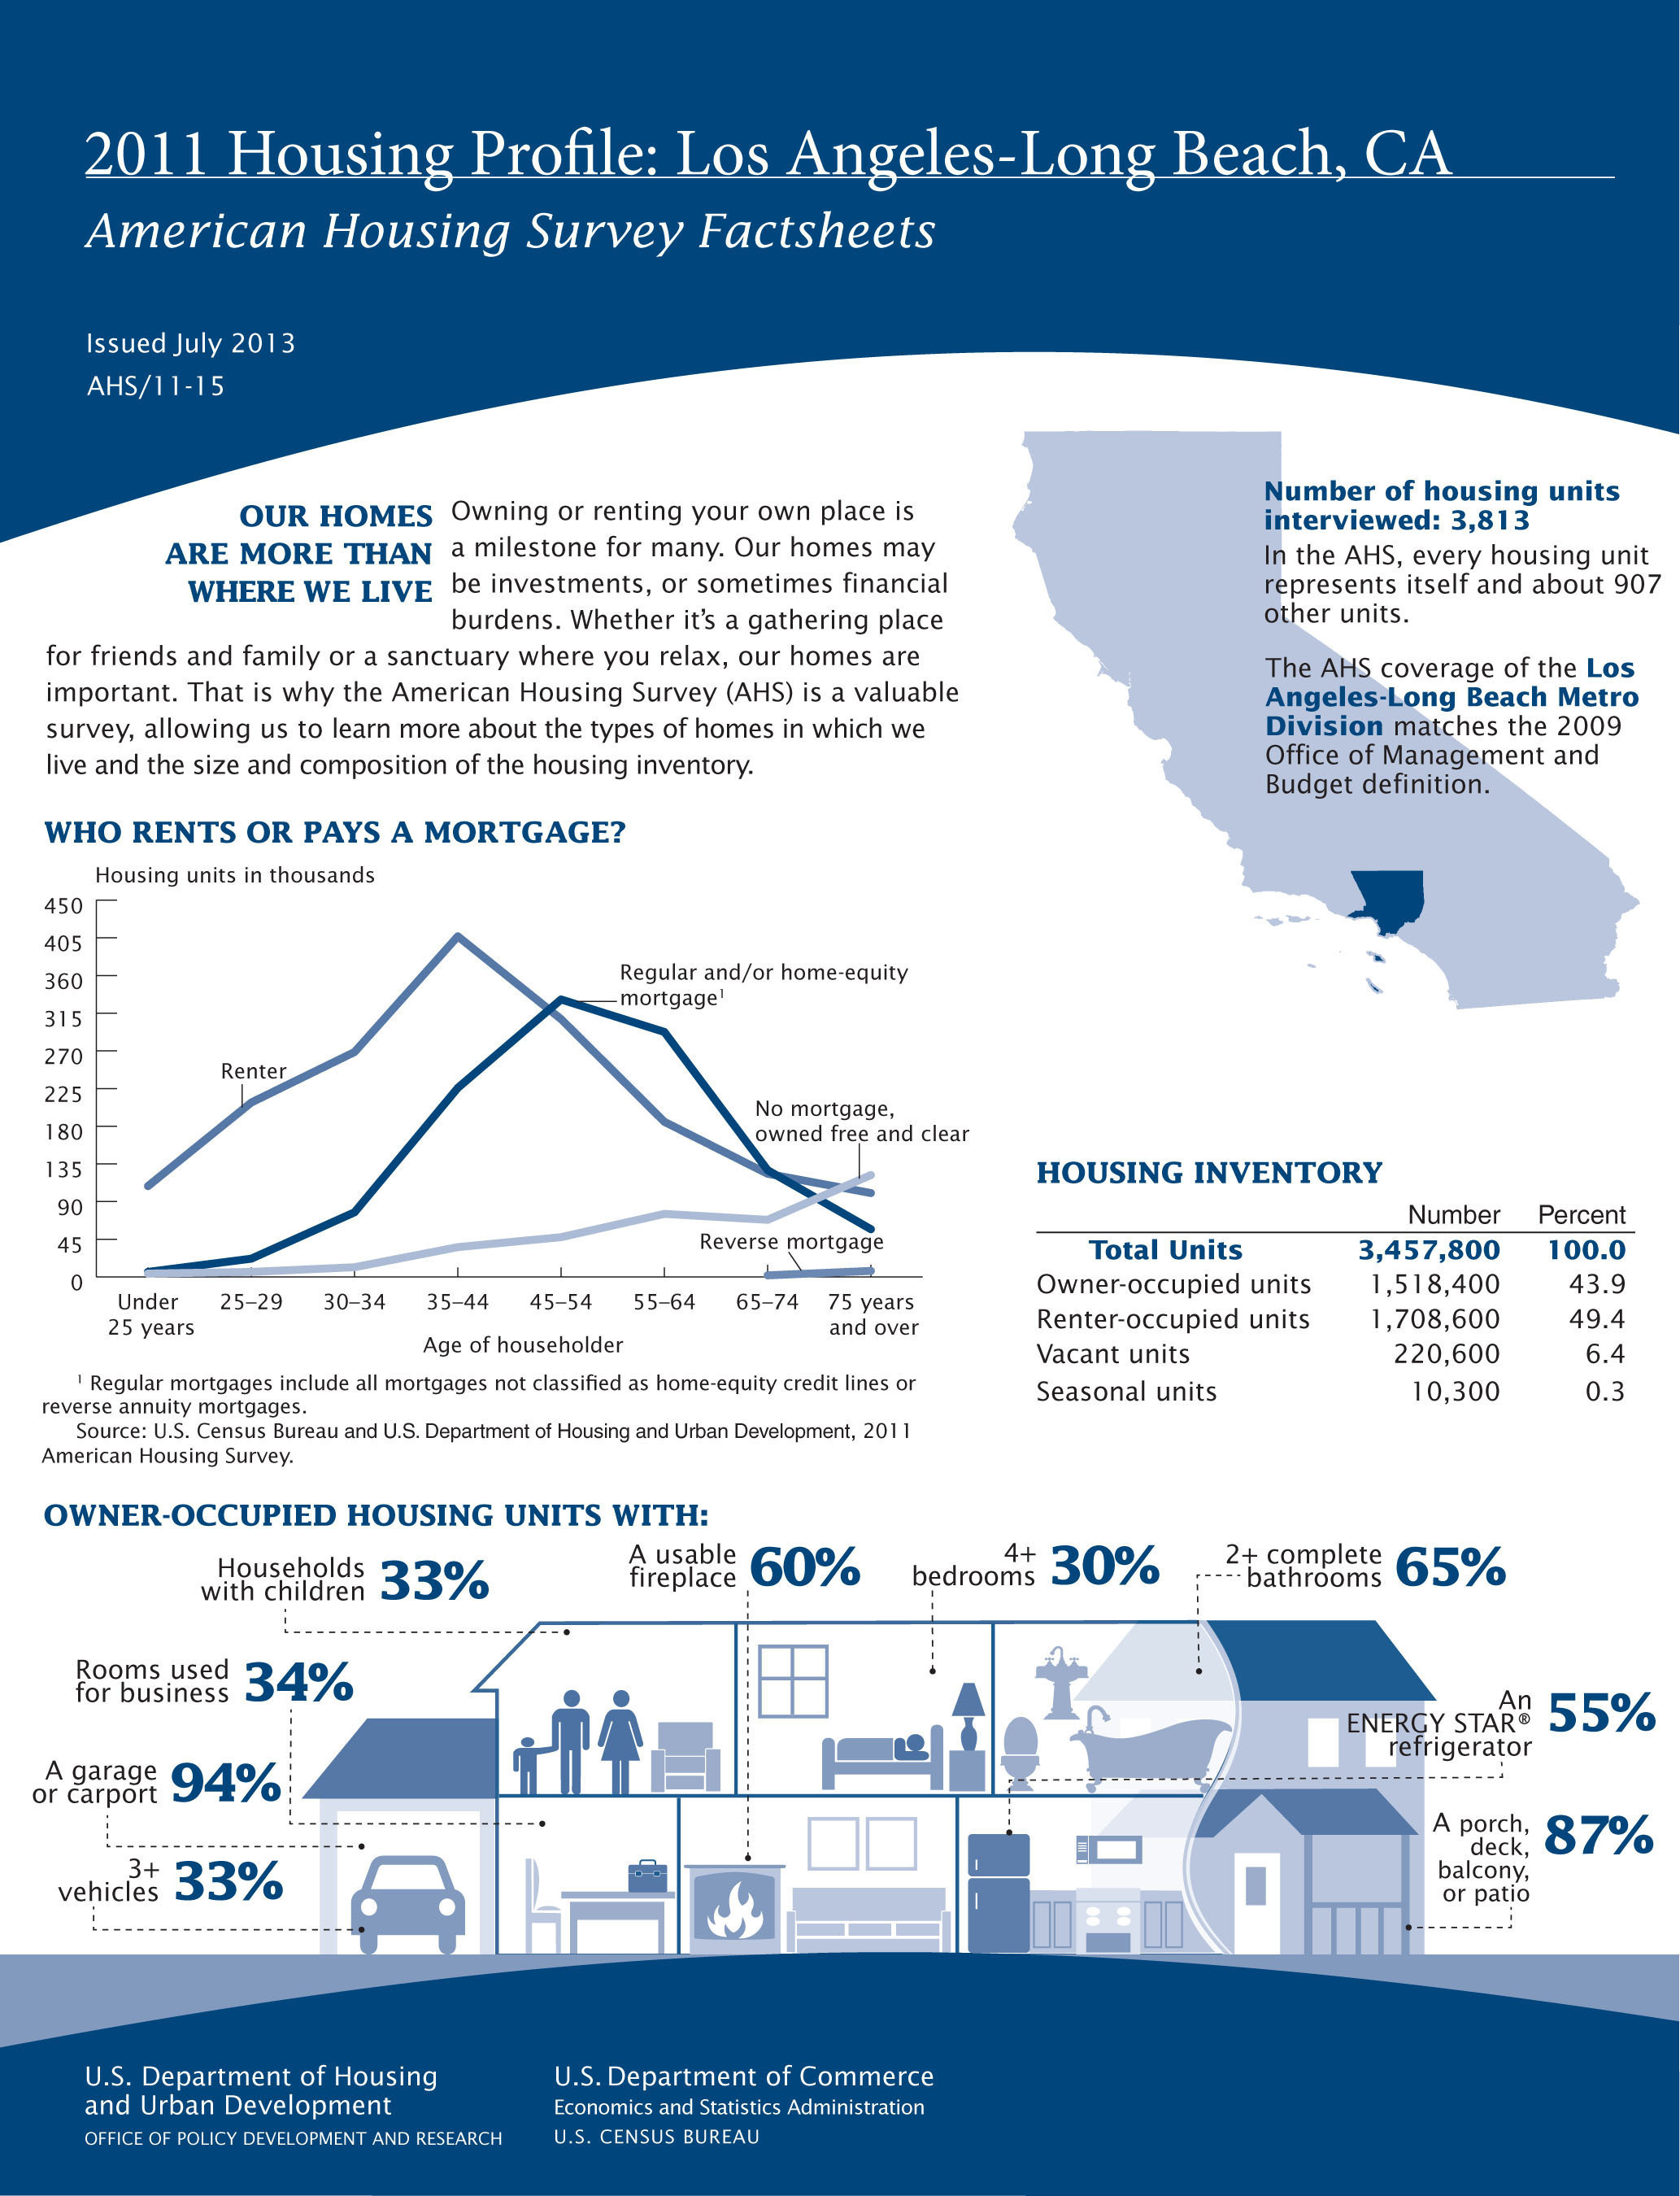 Homeowners in the Los Angeles-Long Beach, Calif., metro division paid a median of $210,000 for their homes, according to a 2011 American Housing Survey profile released today. The median purchase price of homes constructed in the past four years was higher at $365,000. Statistics come from the American Housing Survey, which is sponsored by the Department of Housing and Urban Development (HUD) and conducted by the U.S. Census Bureau. www.census.gov.  (PRNewsFoto/U.S. Census Bureau)